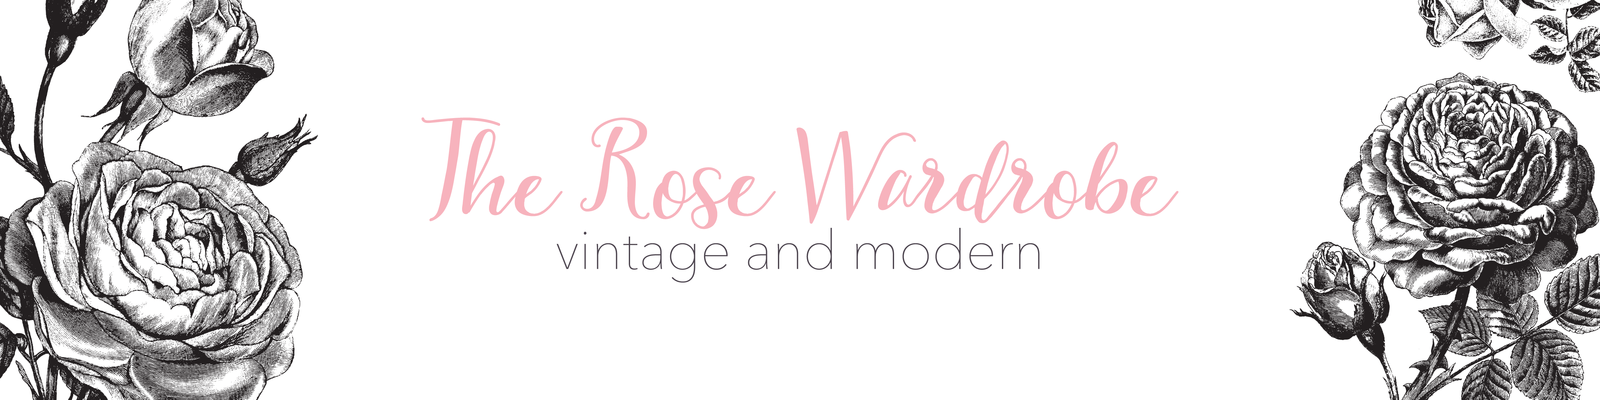 The Rose Wardrobe